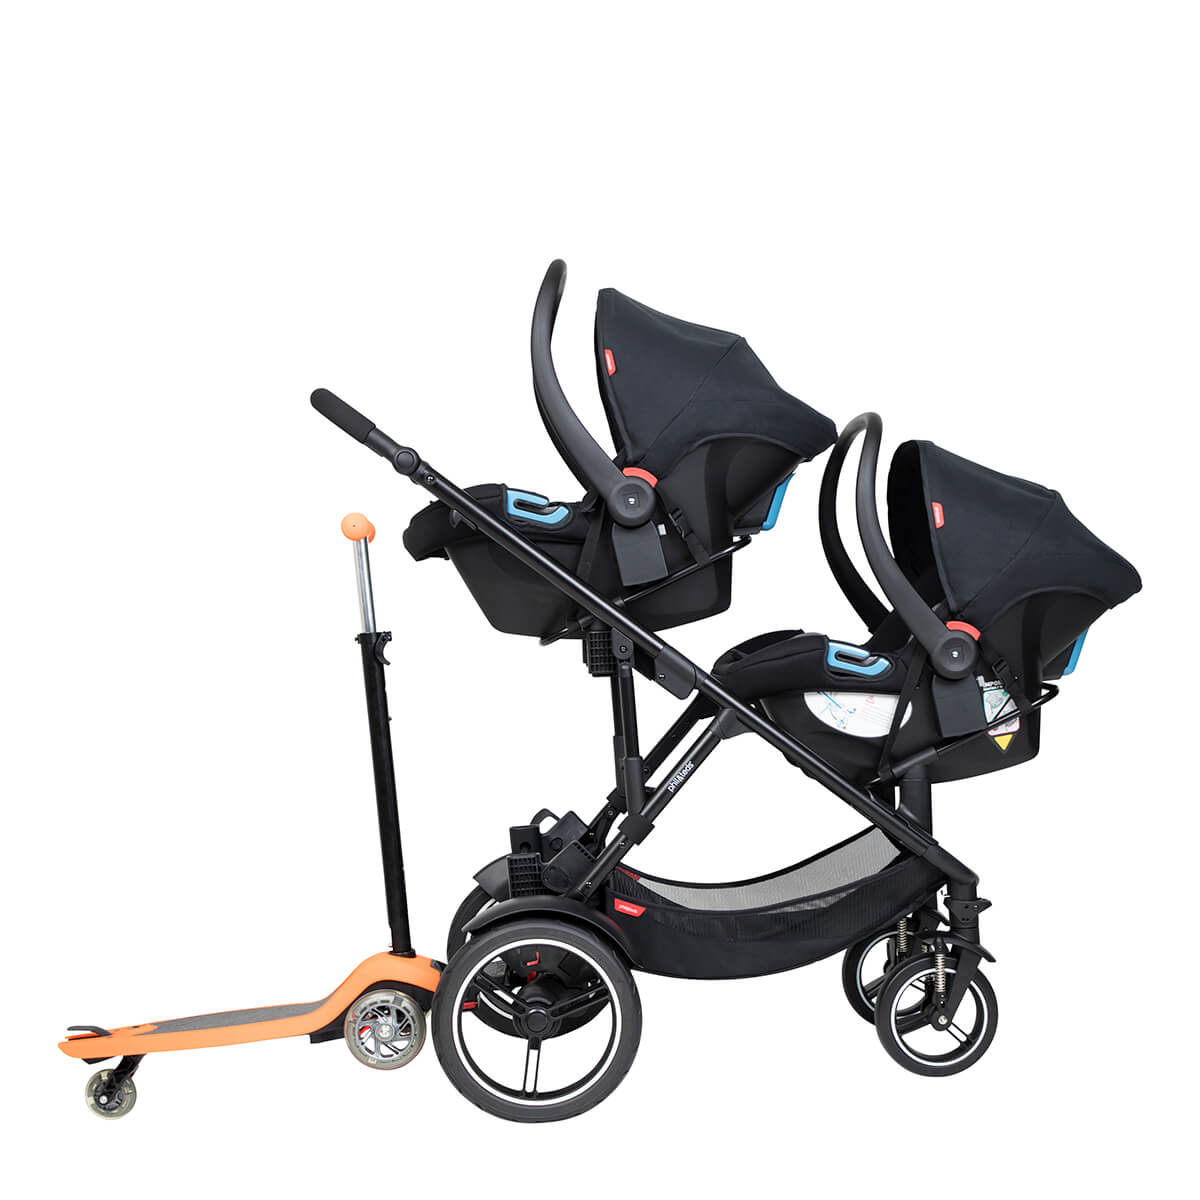 https://cdn.accentuate.io/4343378575394/19438665367730/philteds-voyager-buggy-with-double-travel-systems-and-freerider-stroller-board-in-the-rear-v1626482953075.jpg?1200x1200